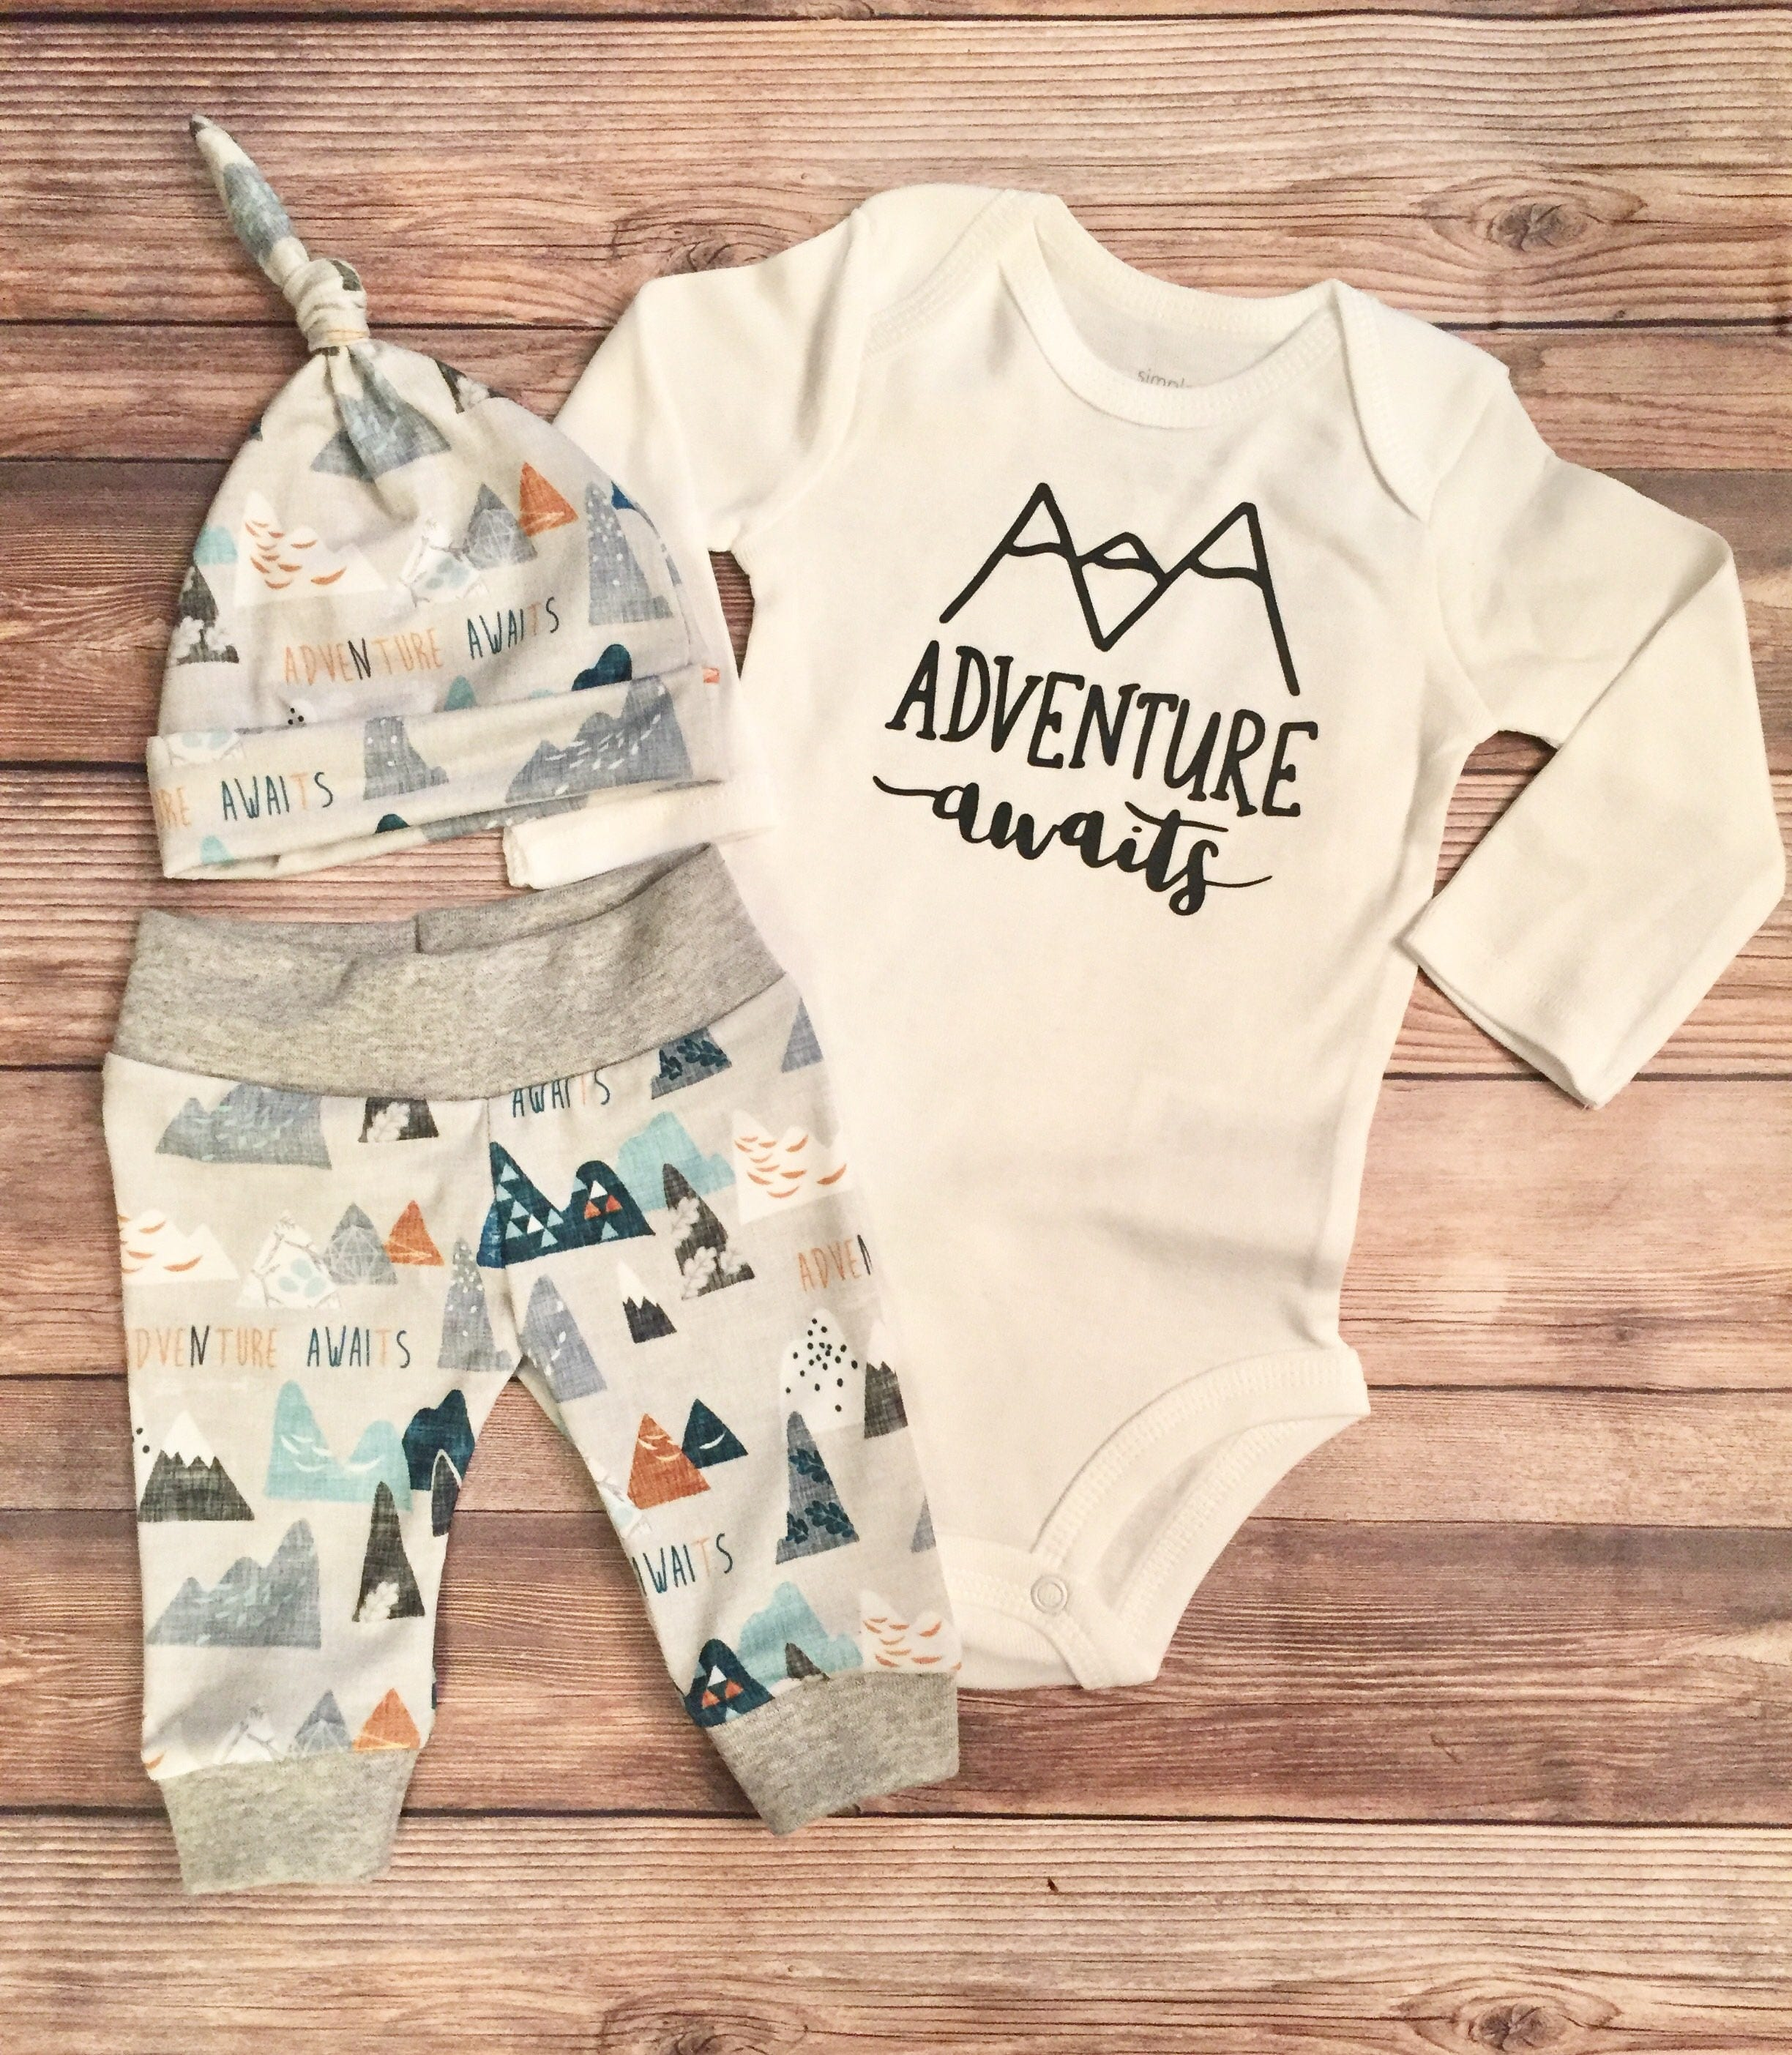 Adventure Awaits Newborn Boy Coming Home Outfit Newborn | Etsy